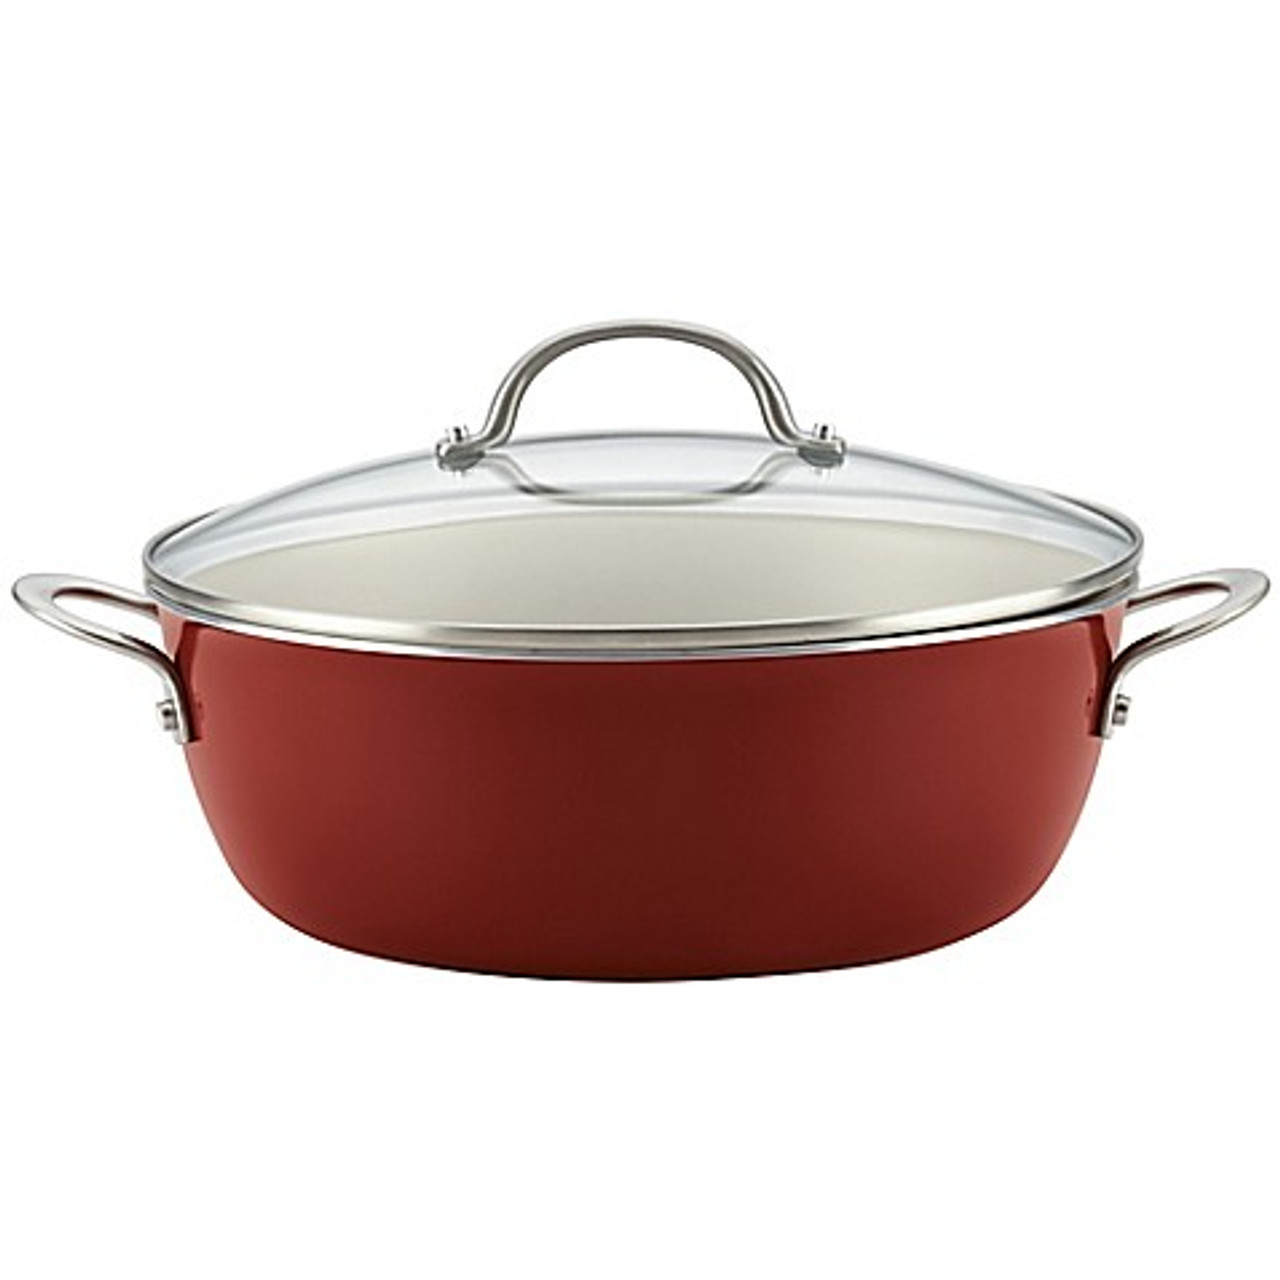 Ayesha Curry™ Porcelain Enamel Nonstick 5.5 qt. Covered Stock Pot in Sienna  Red